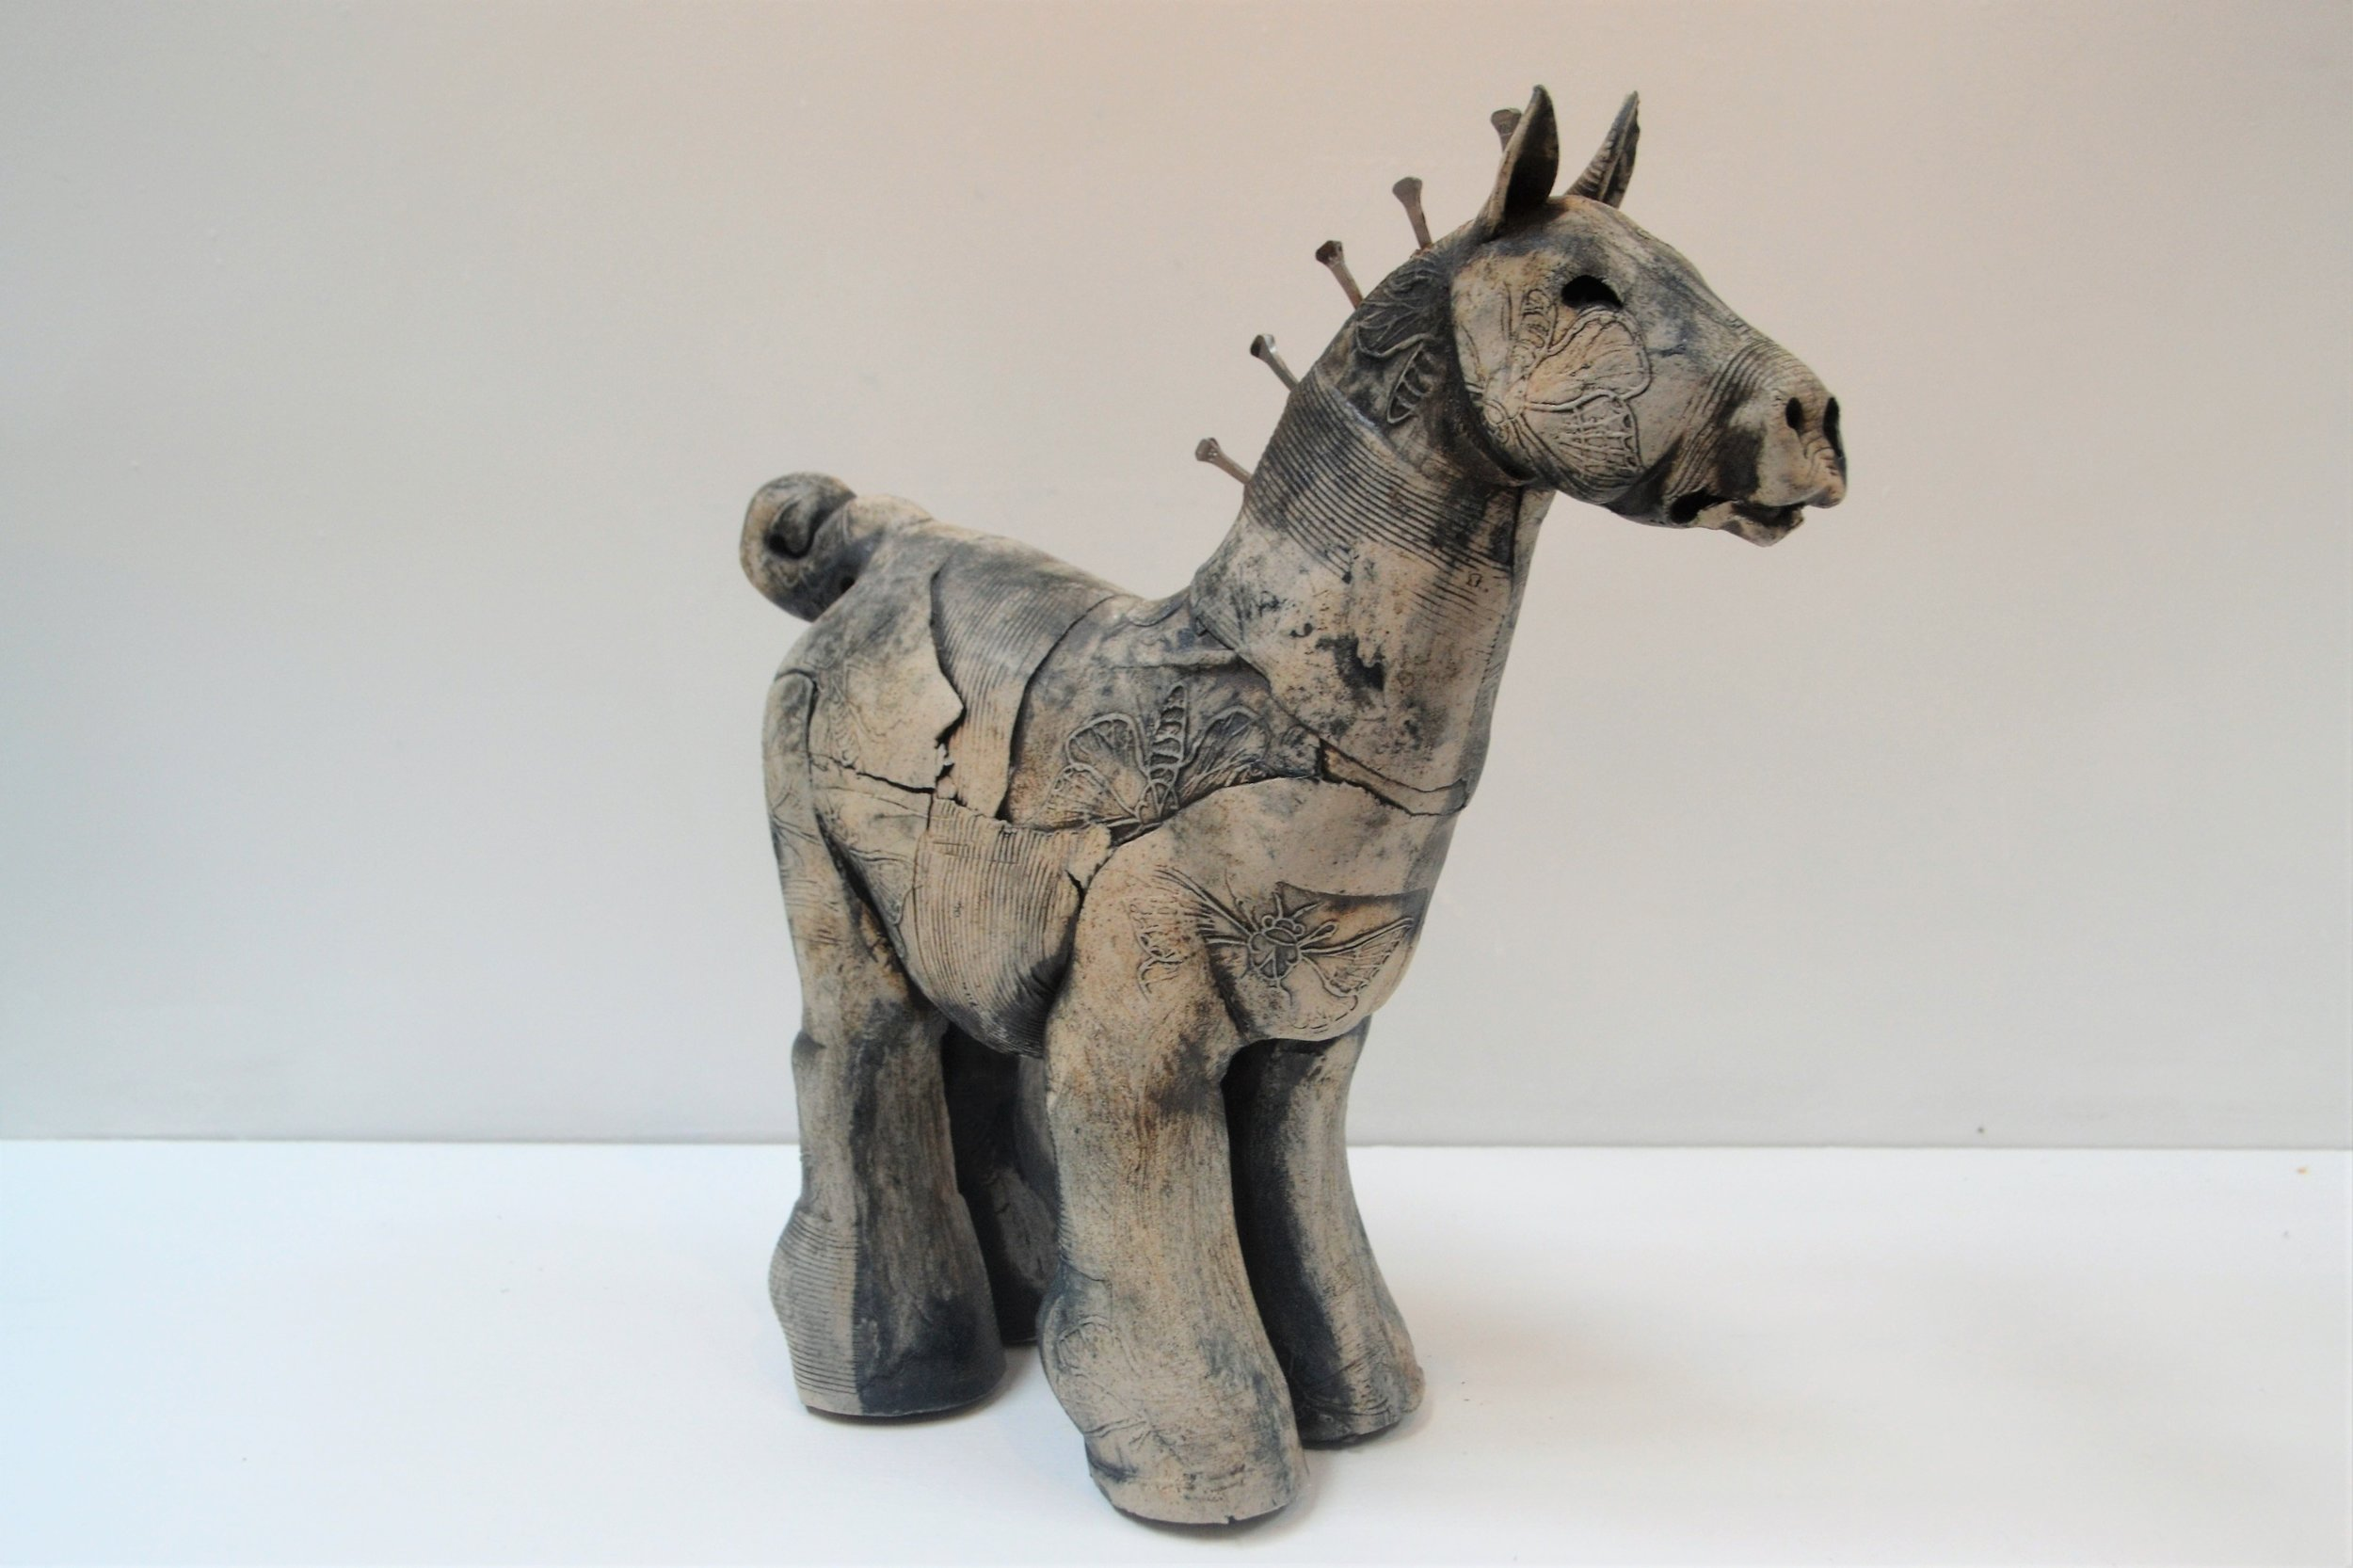 Blue Horse  Fiona Tunnicliffe, hand formed ceramic sculpture, 340mm height  sold